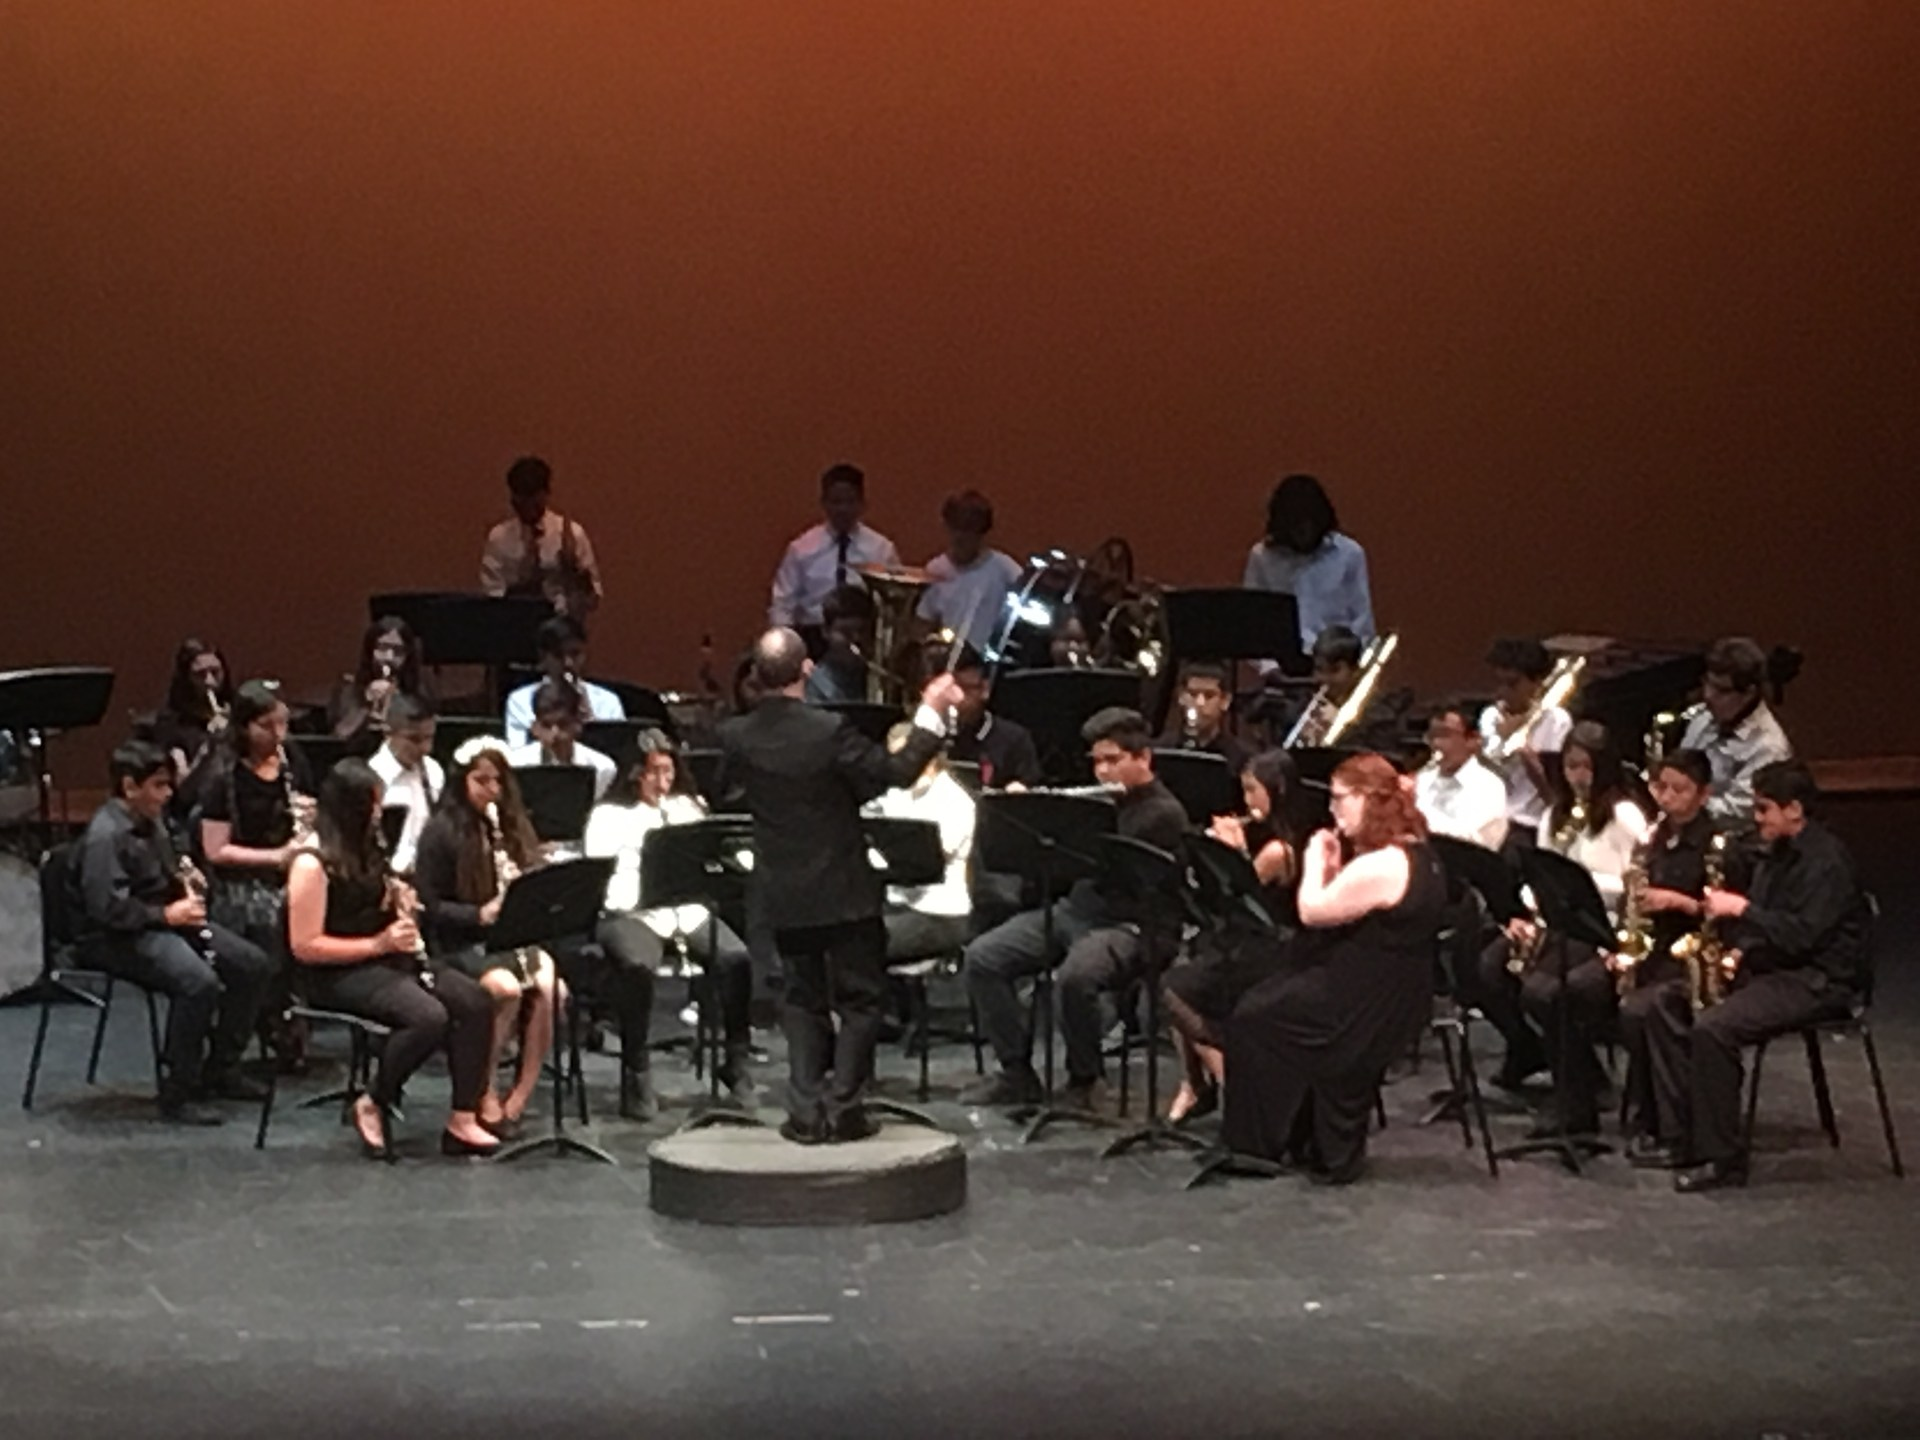 A Jr. High orchestra performing.